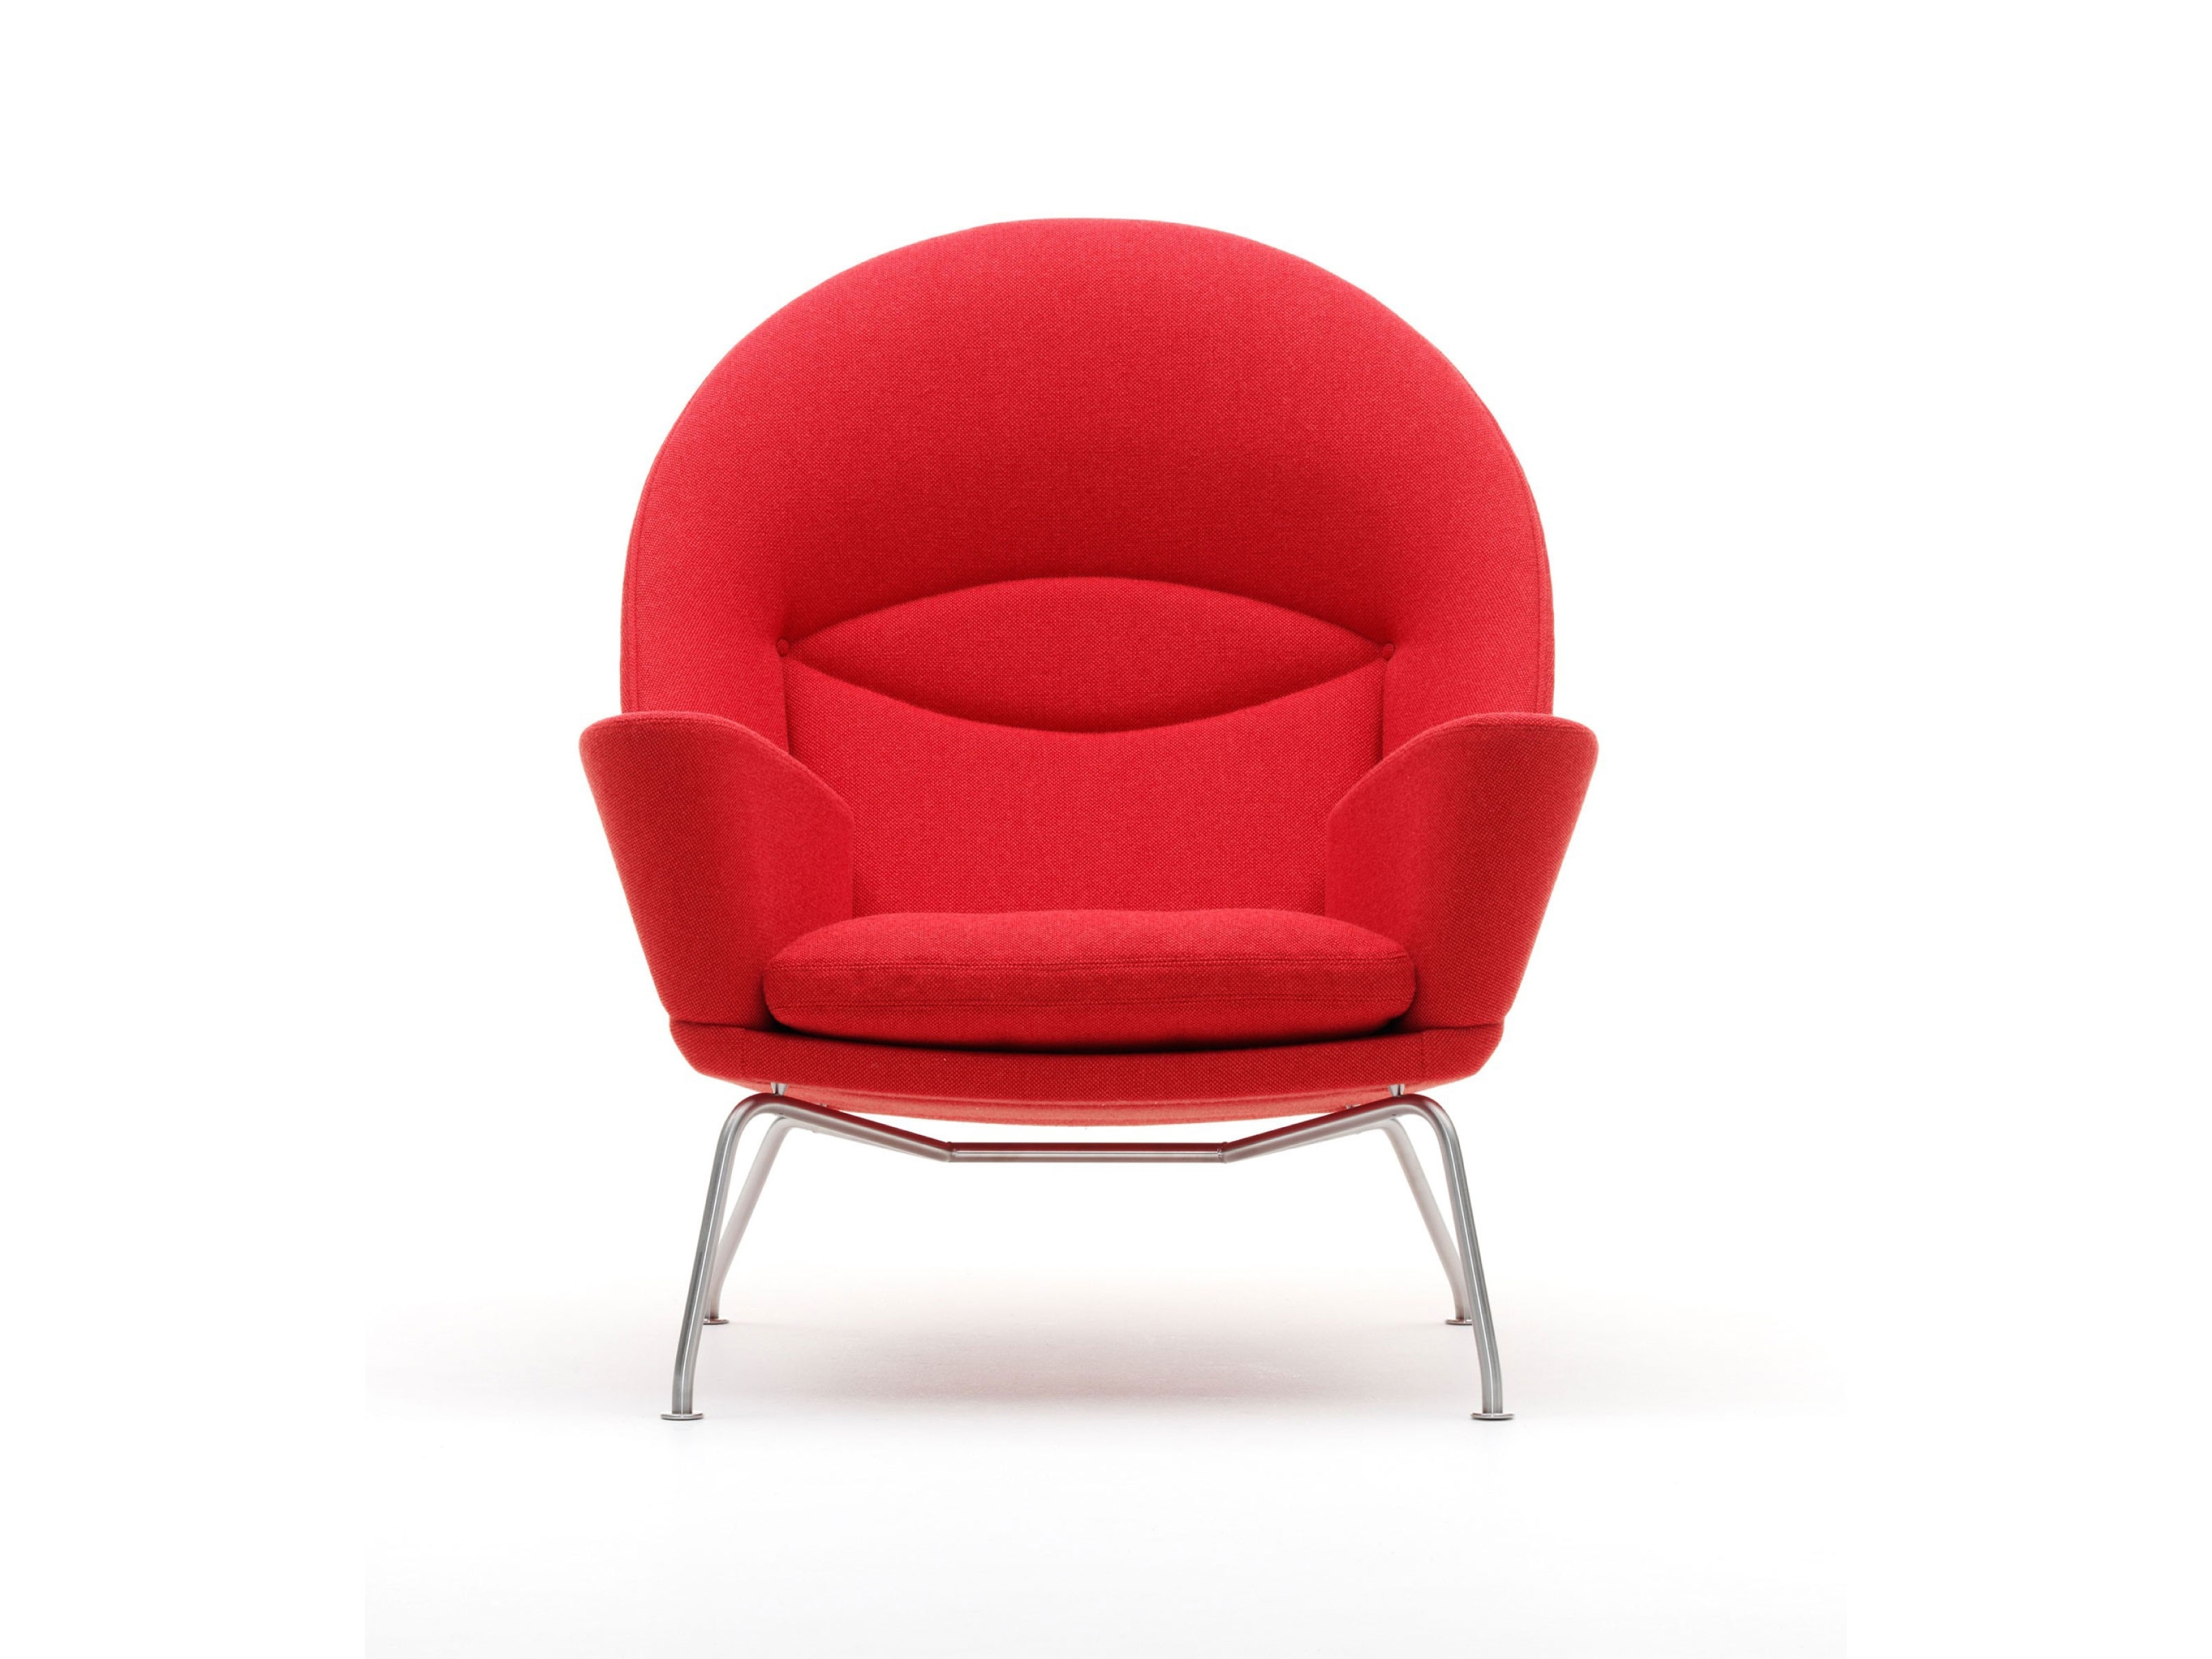 Executive Office Lounge Chairs Intended For Well Known Office Lounge Furniture & Lobby Chairs – Steelcase (View 9 of 20)